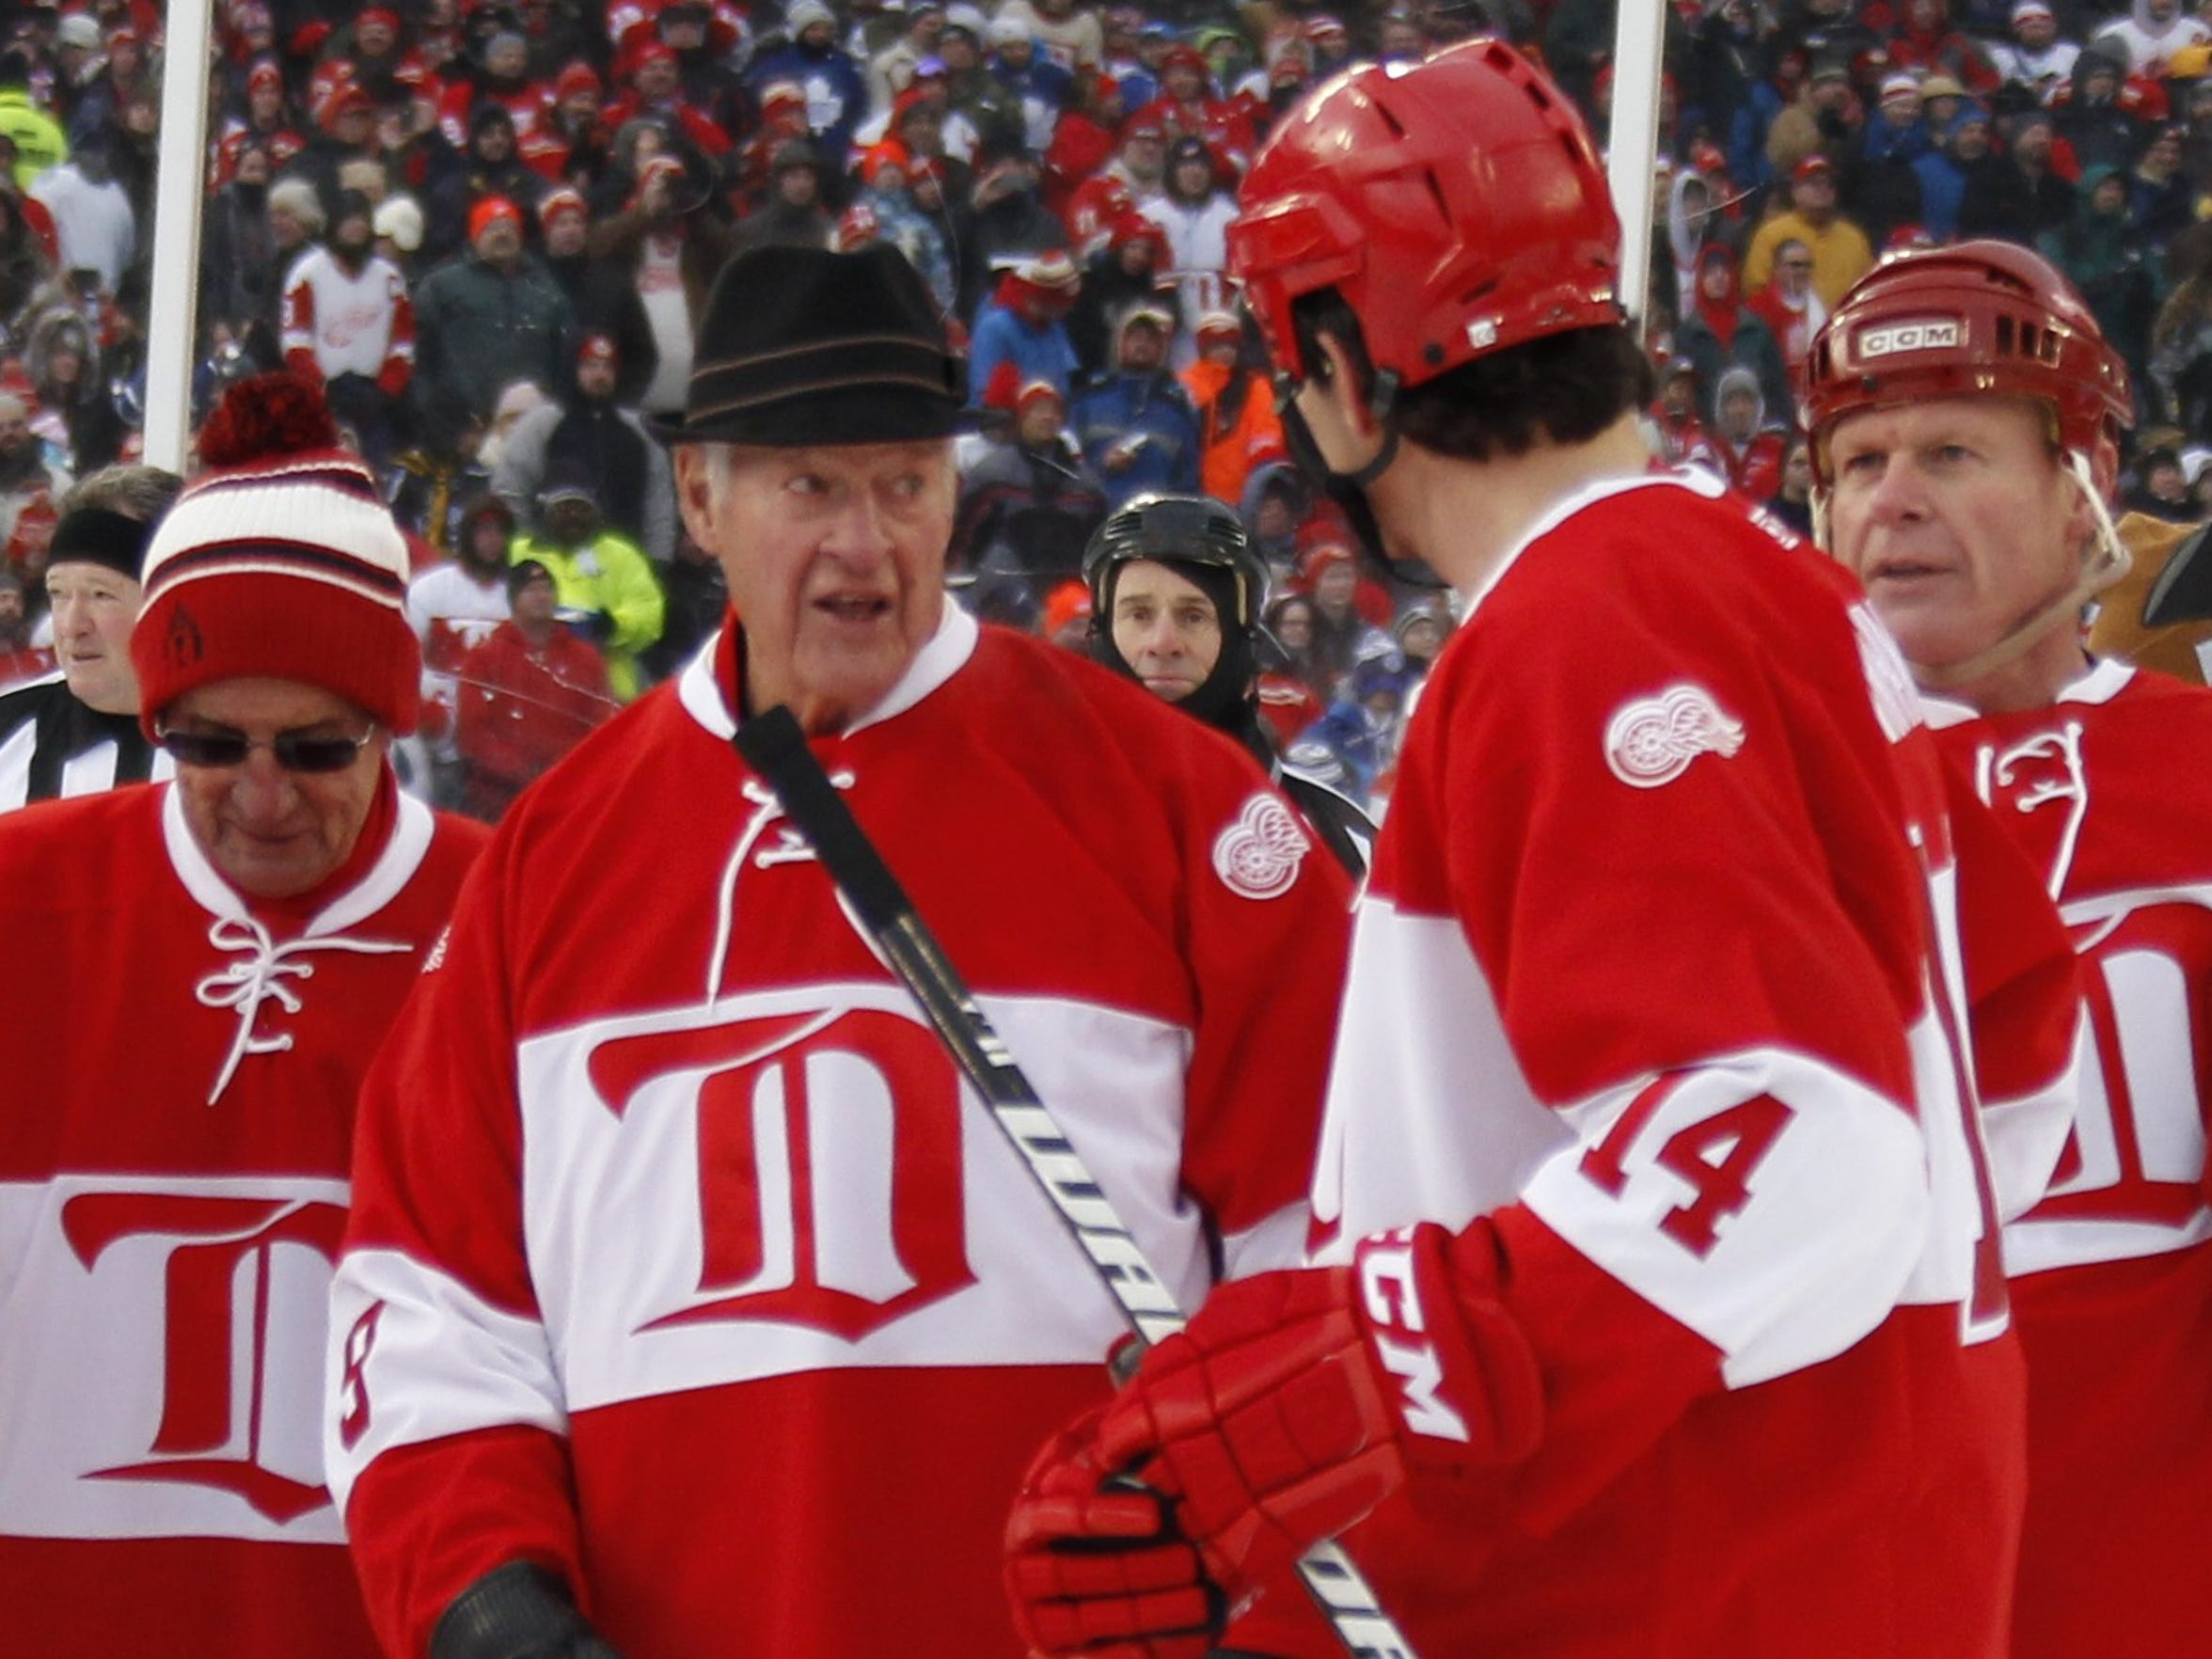 Gordie Howe at NHL Winter Classic festivities on Dec. 31, 2013, along with Brendan Shanahan, right, and Ted Lindsay, left.